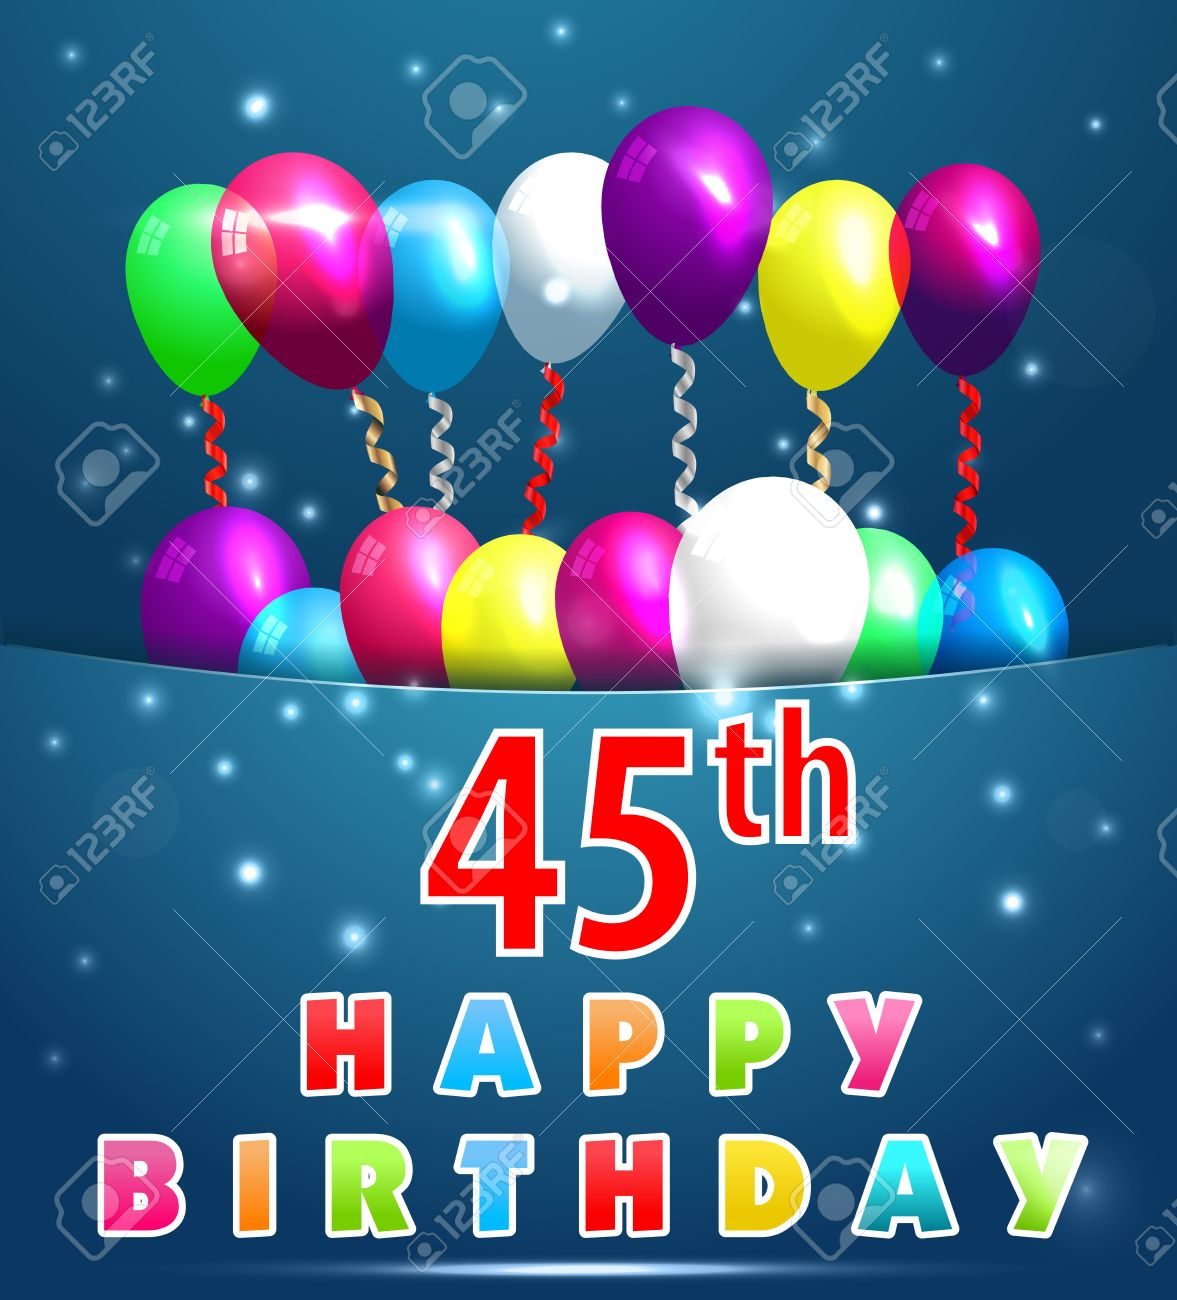 45 Year Happy Birthday Card With Balloons And Ribbons 45th Stock Vector